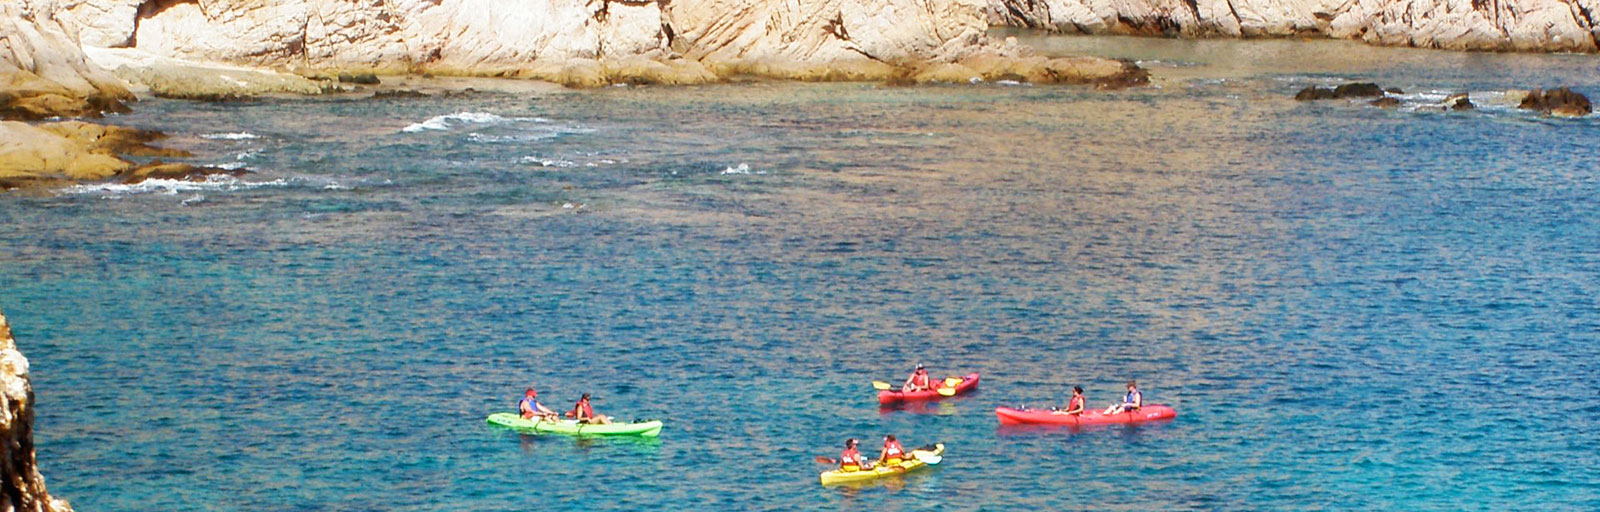 Sea Kayaking & Snorkeling on a Mexico Yoga Retreat: Relaxing Paddle